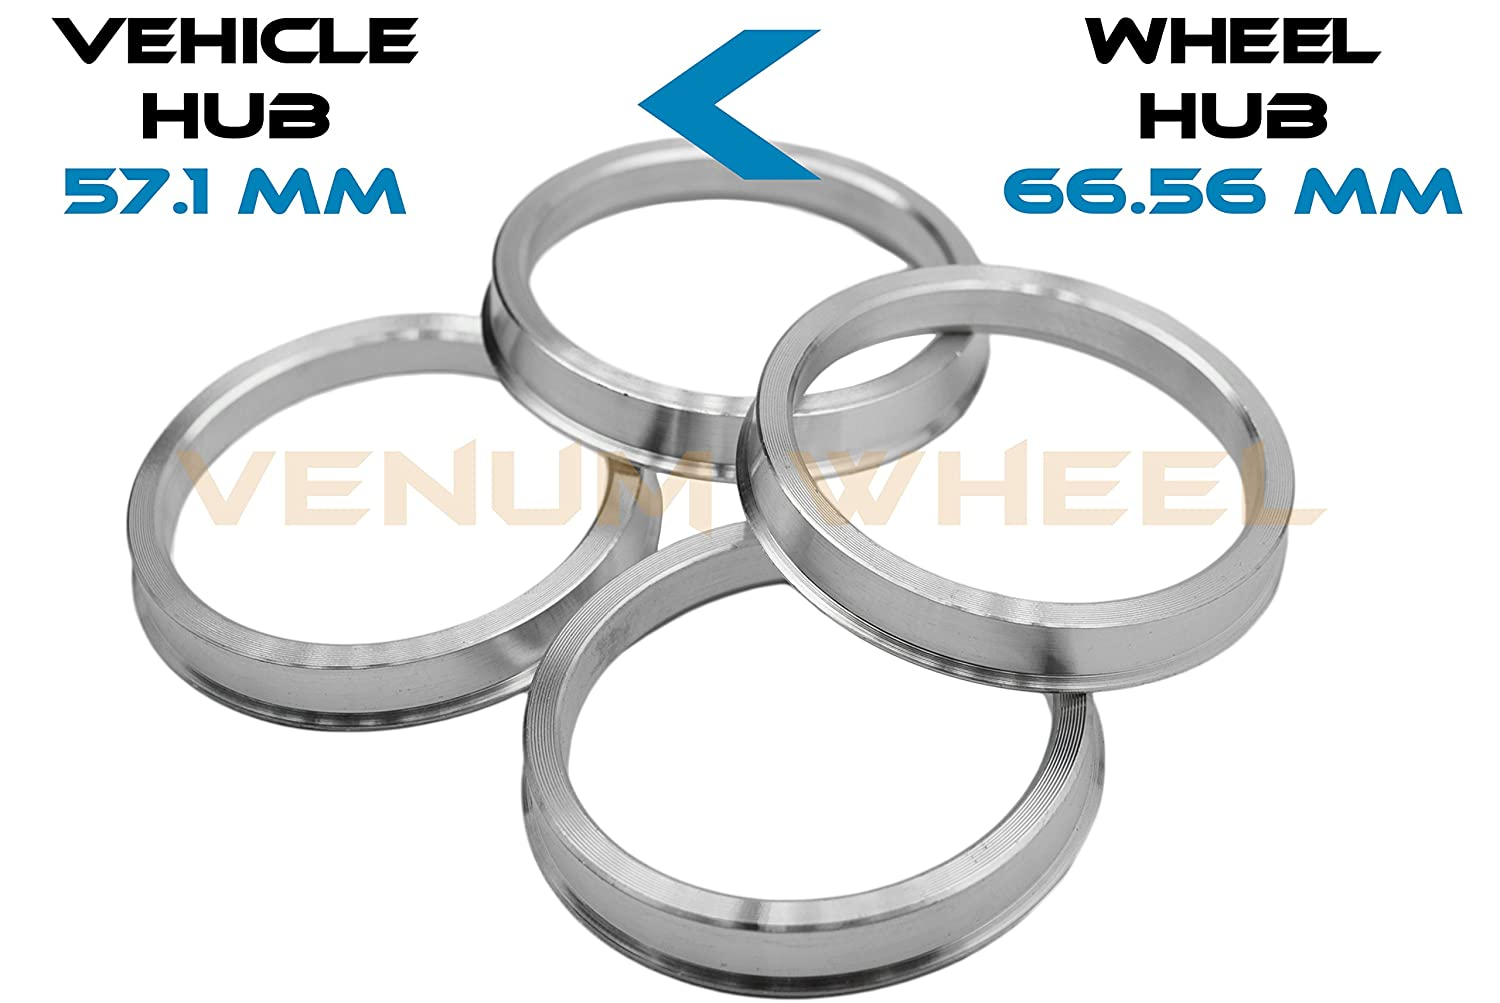 4 Pc Hub Centric Rings 57.1 ID To 66.56 OD Aluminum Color- (Vehicle - 57.1 mm)( Wheel-66.56 mm) VENUM WHEEL ACCESSORIES